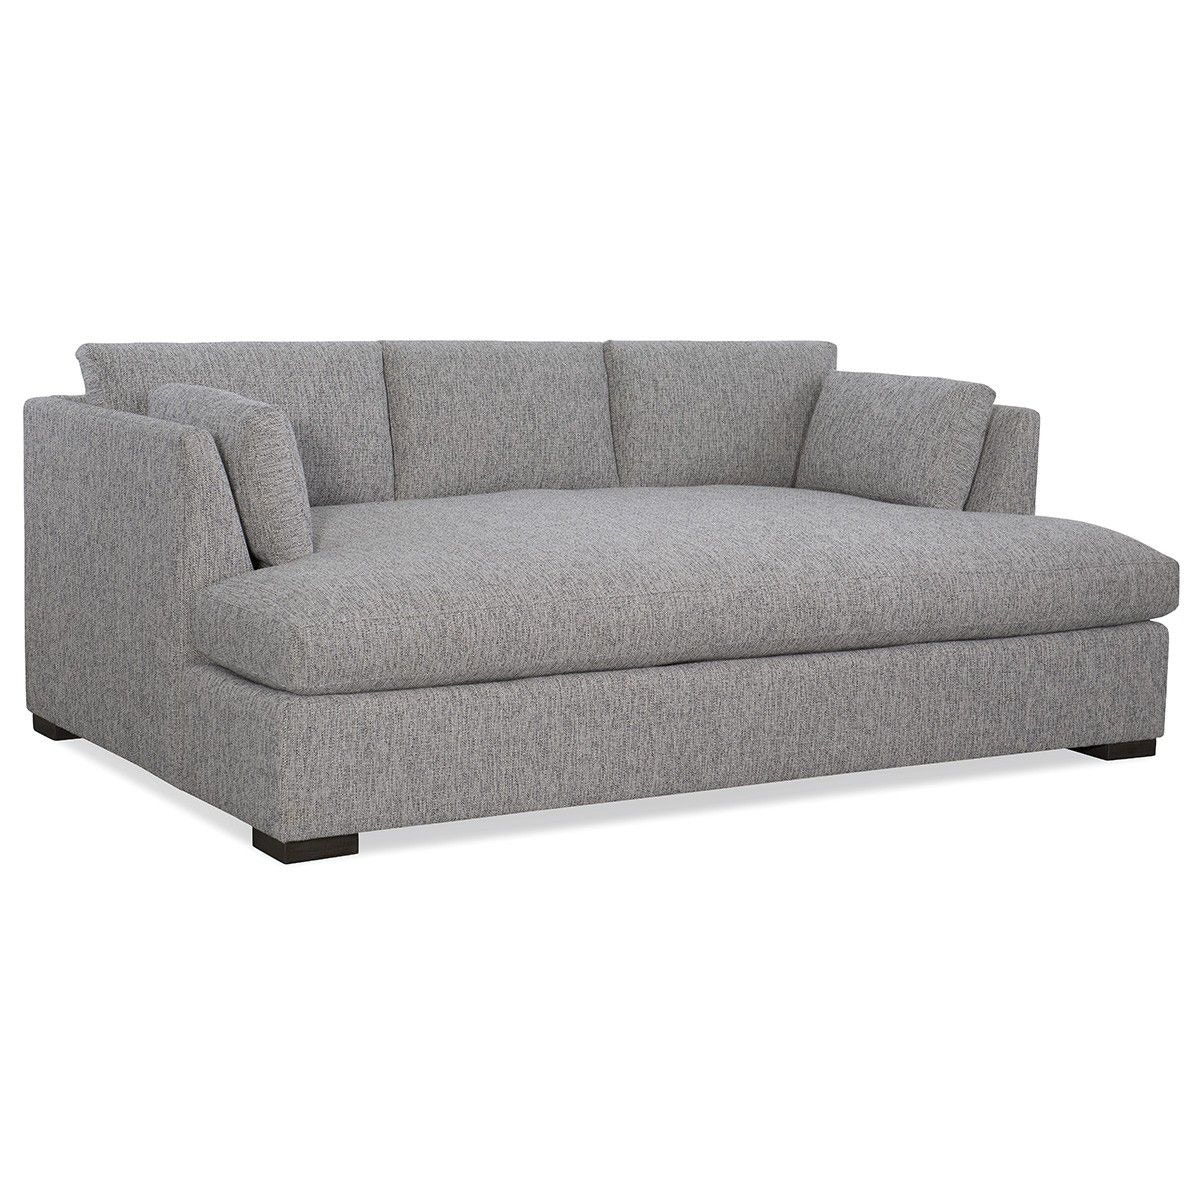 CR Laine Living Room Lounger Sofa 2110 43B At Swannu0027s Furniture